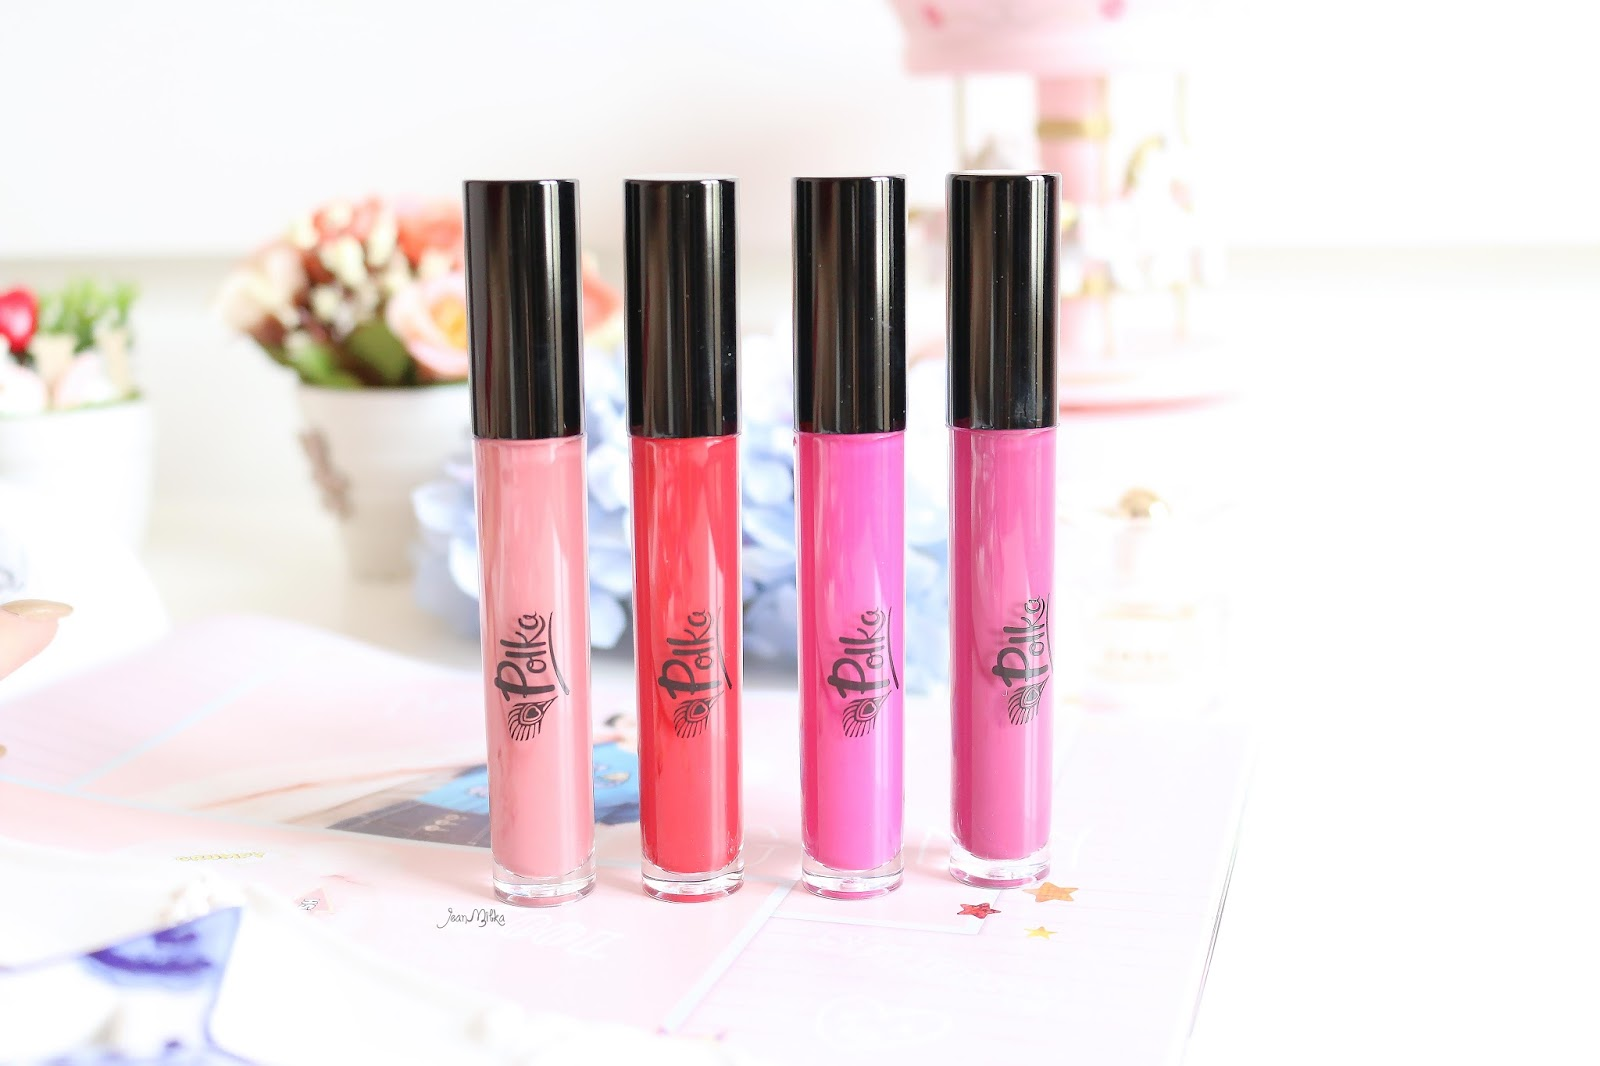 polka, polka beauty, lip lacquer, polka cosmetics, polka matteness, polka lip lacquer, matte lipstick, matte, lip, review, swatch, drugstore, produk indonesia